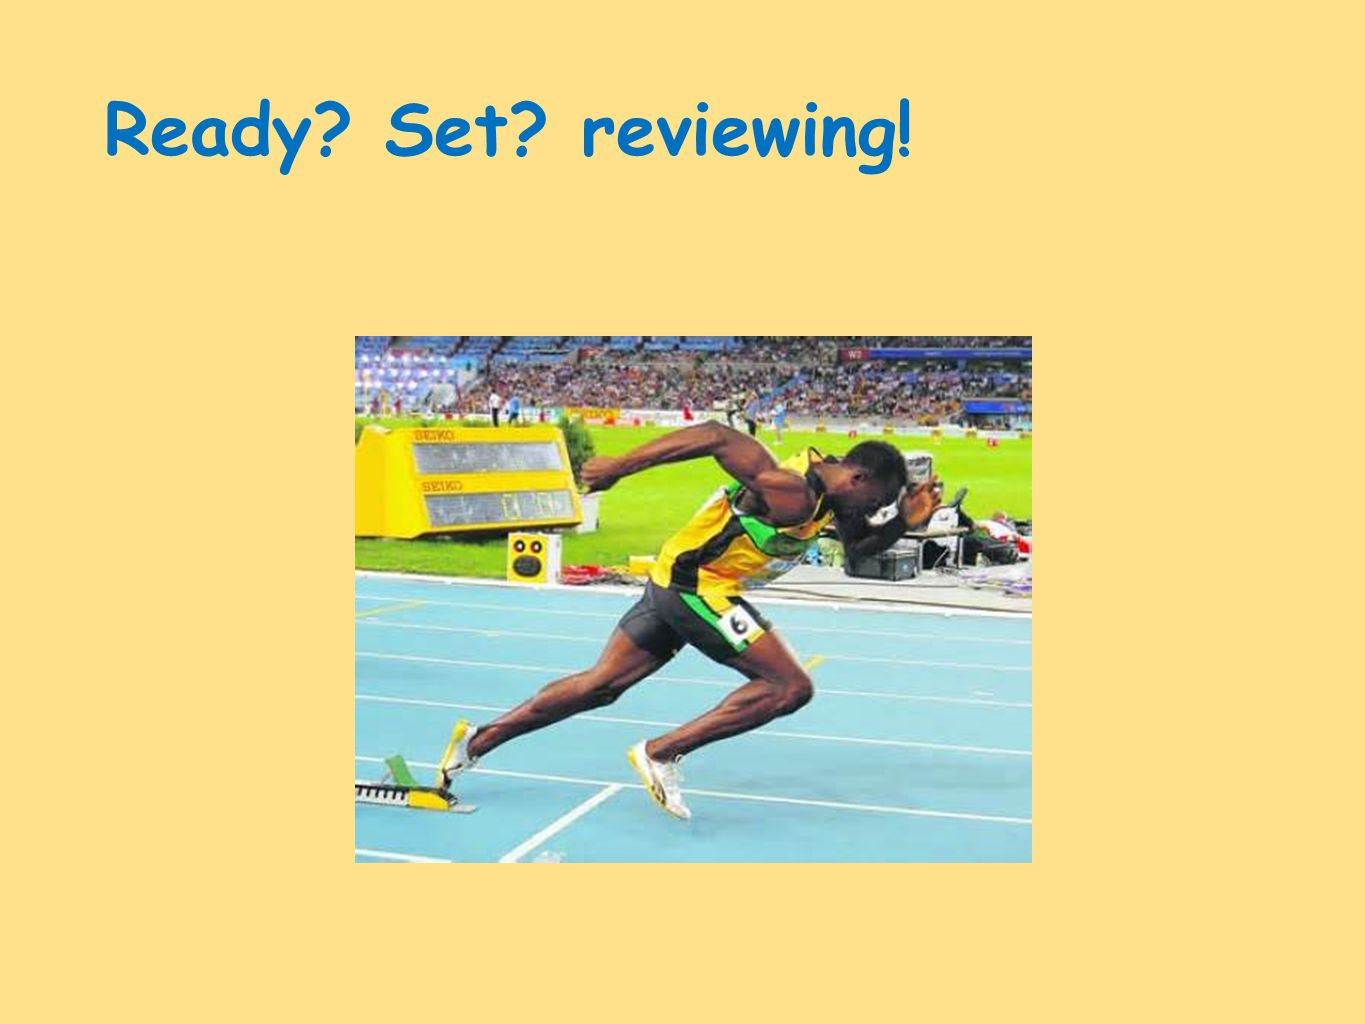 Ready? Set? reviewing!